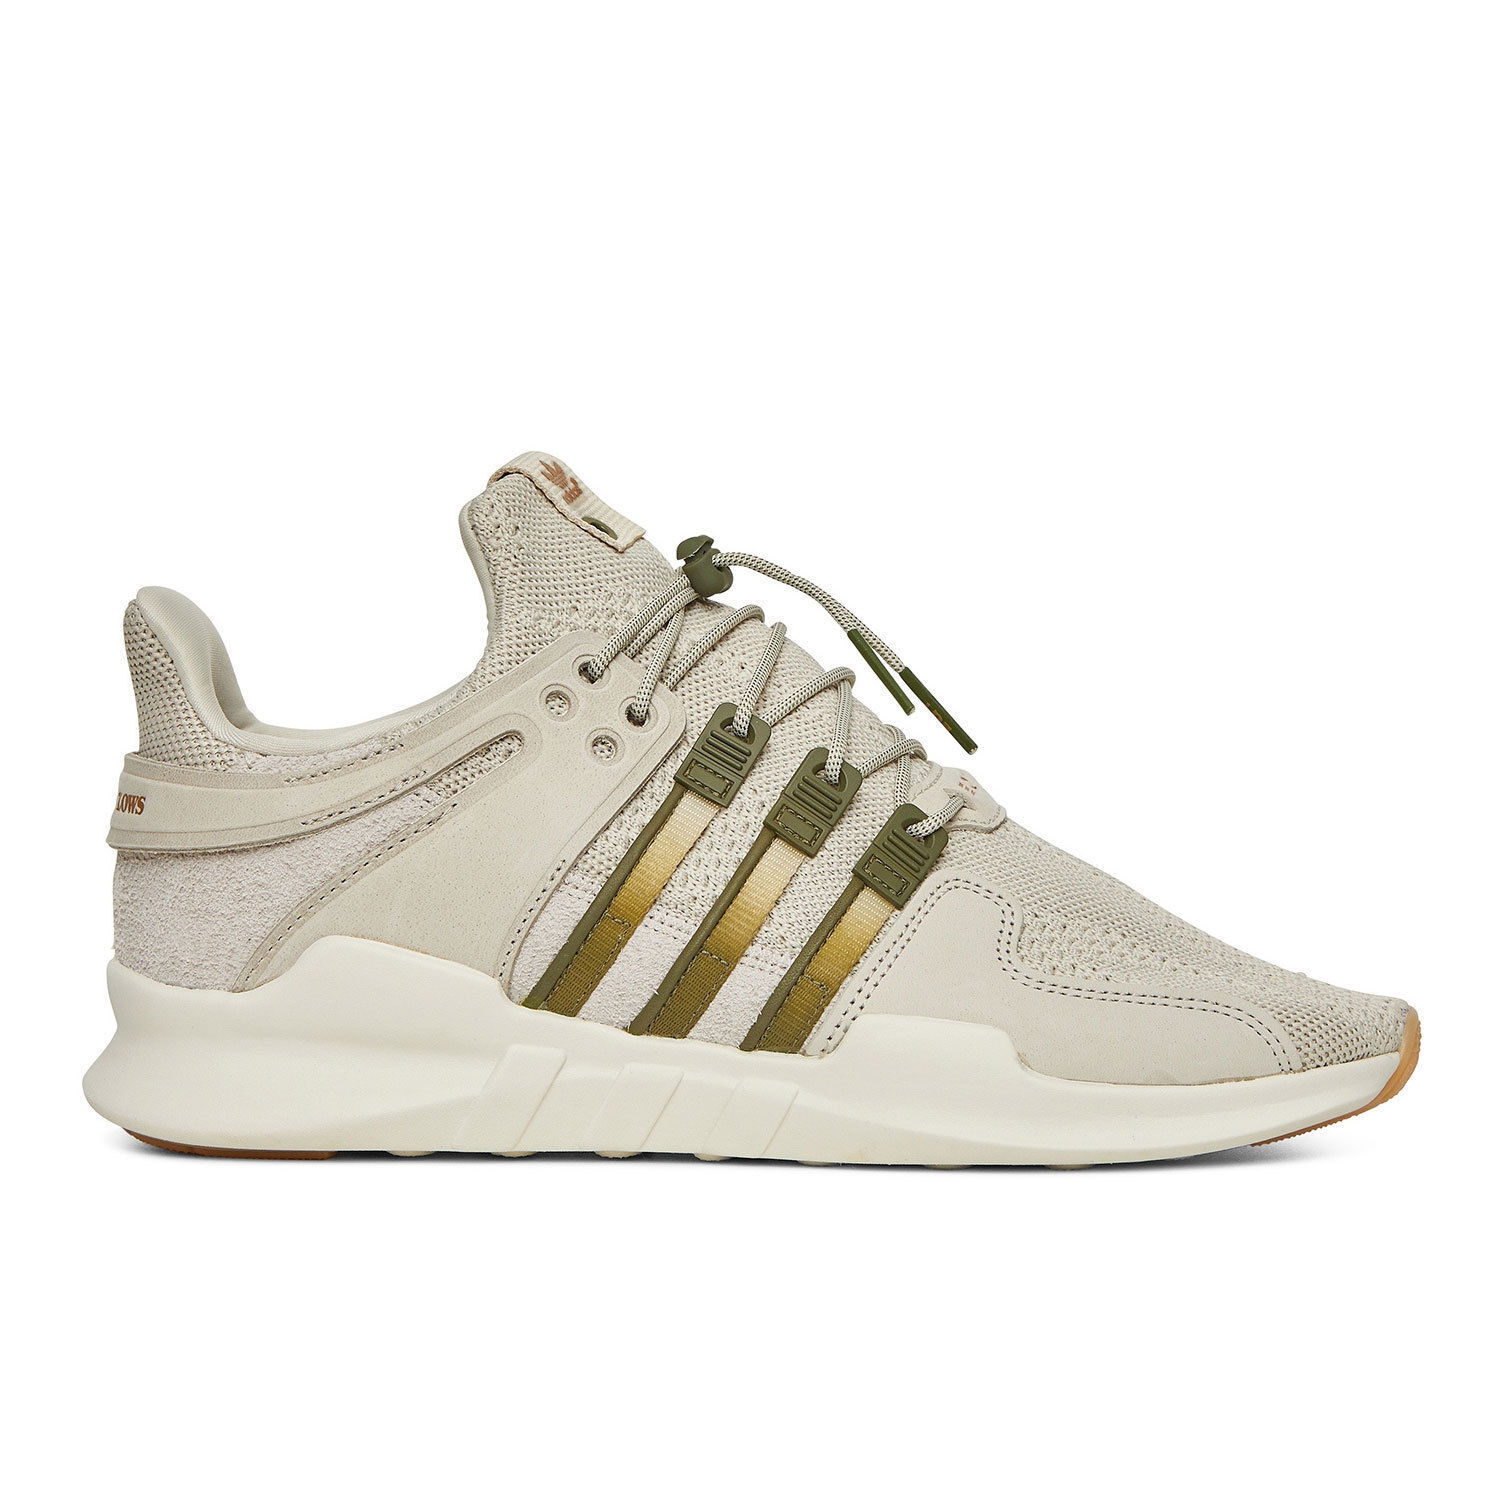 Adidas Consortium X Highs And Lows size 12.5. EQT Support ADV CM7873 ultra boost